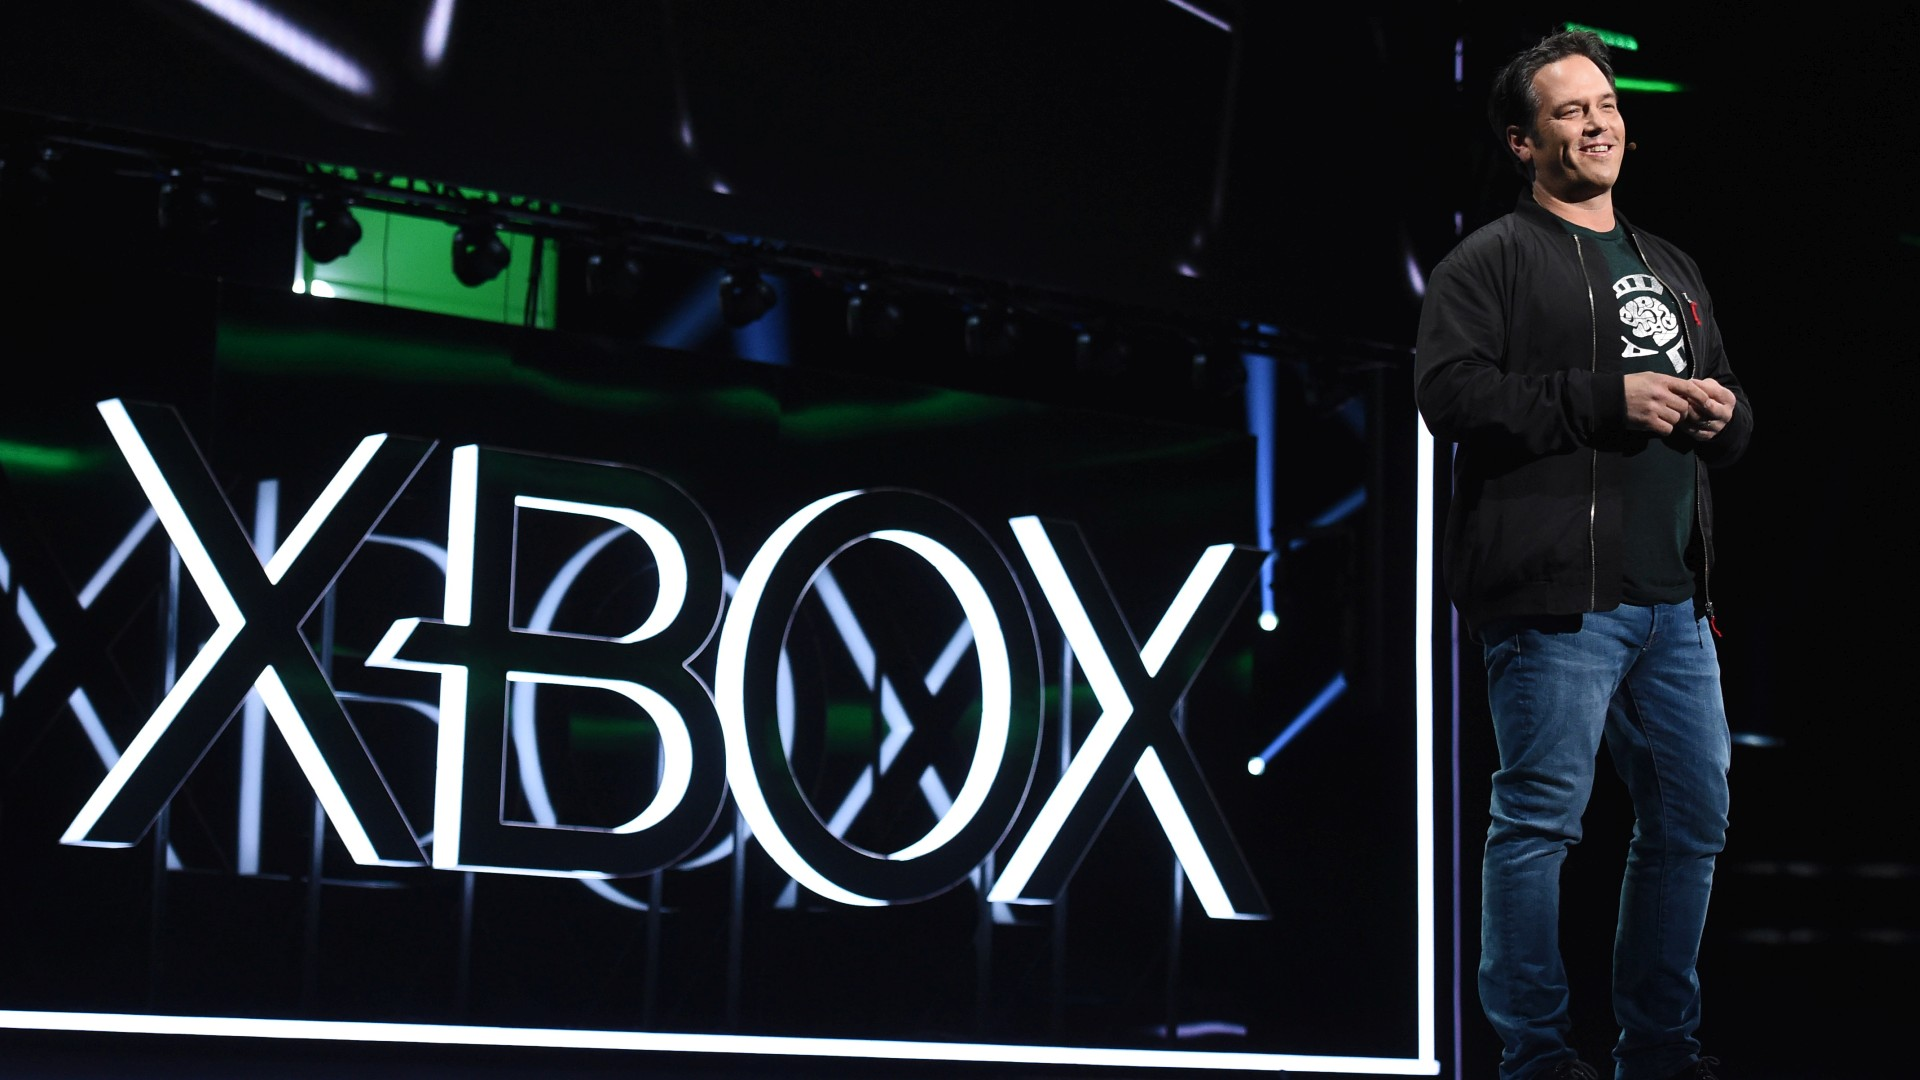 This Year on Xbox Wire: 2019